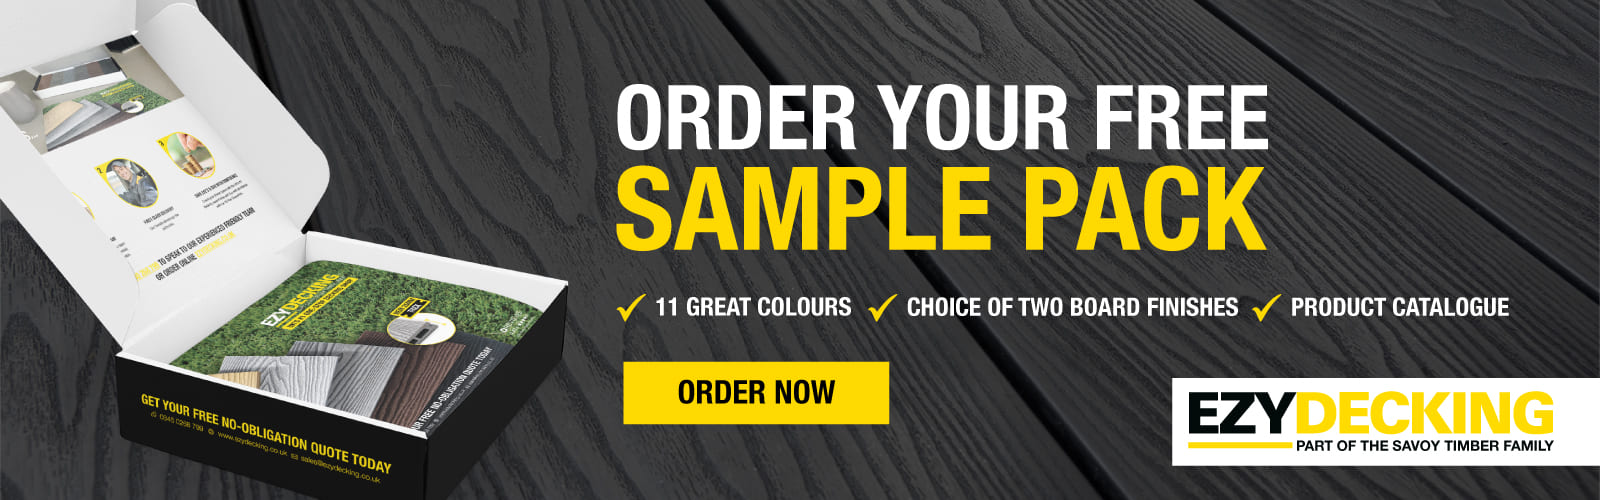 Order Your Free Sample Pack